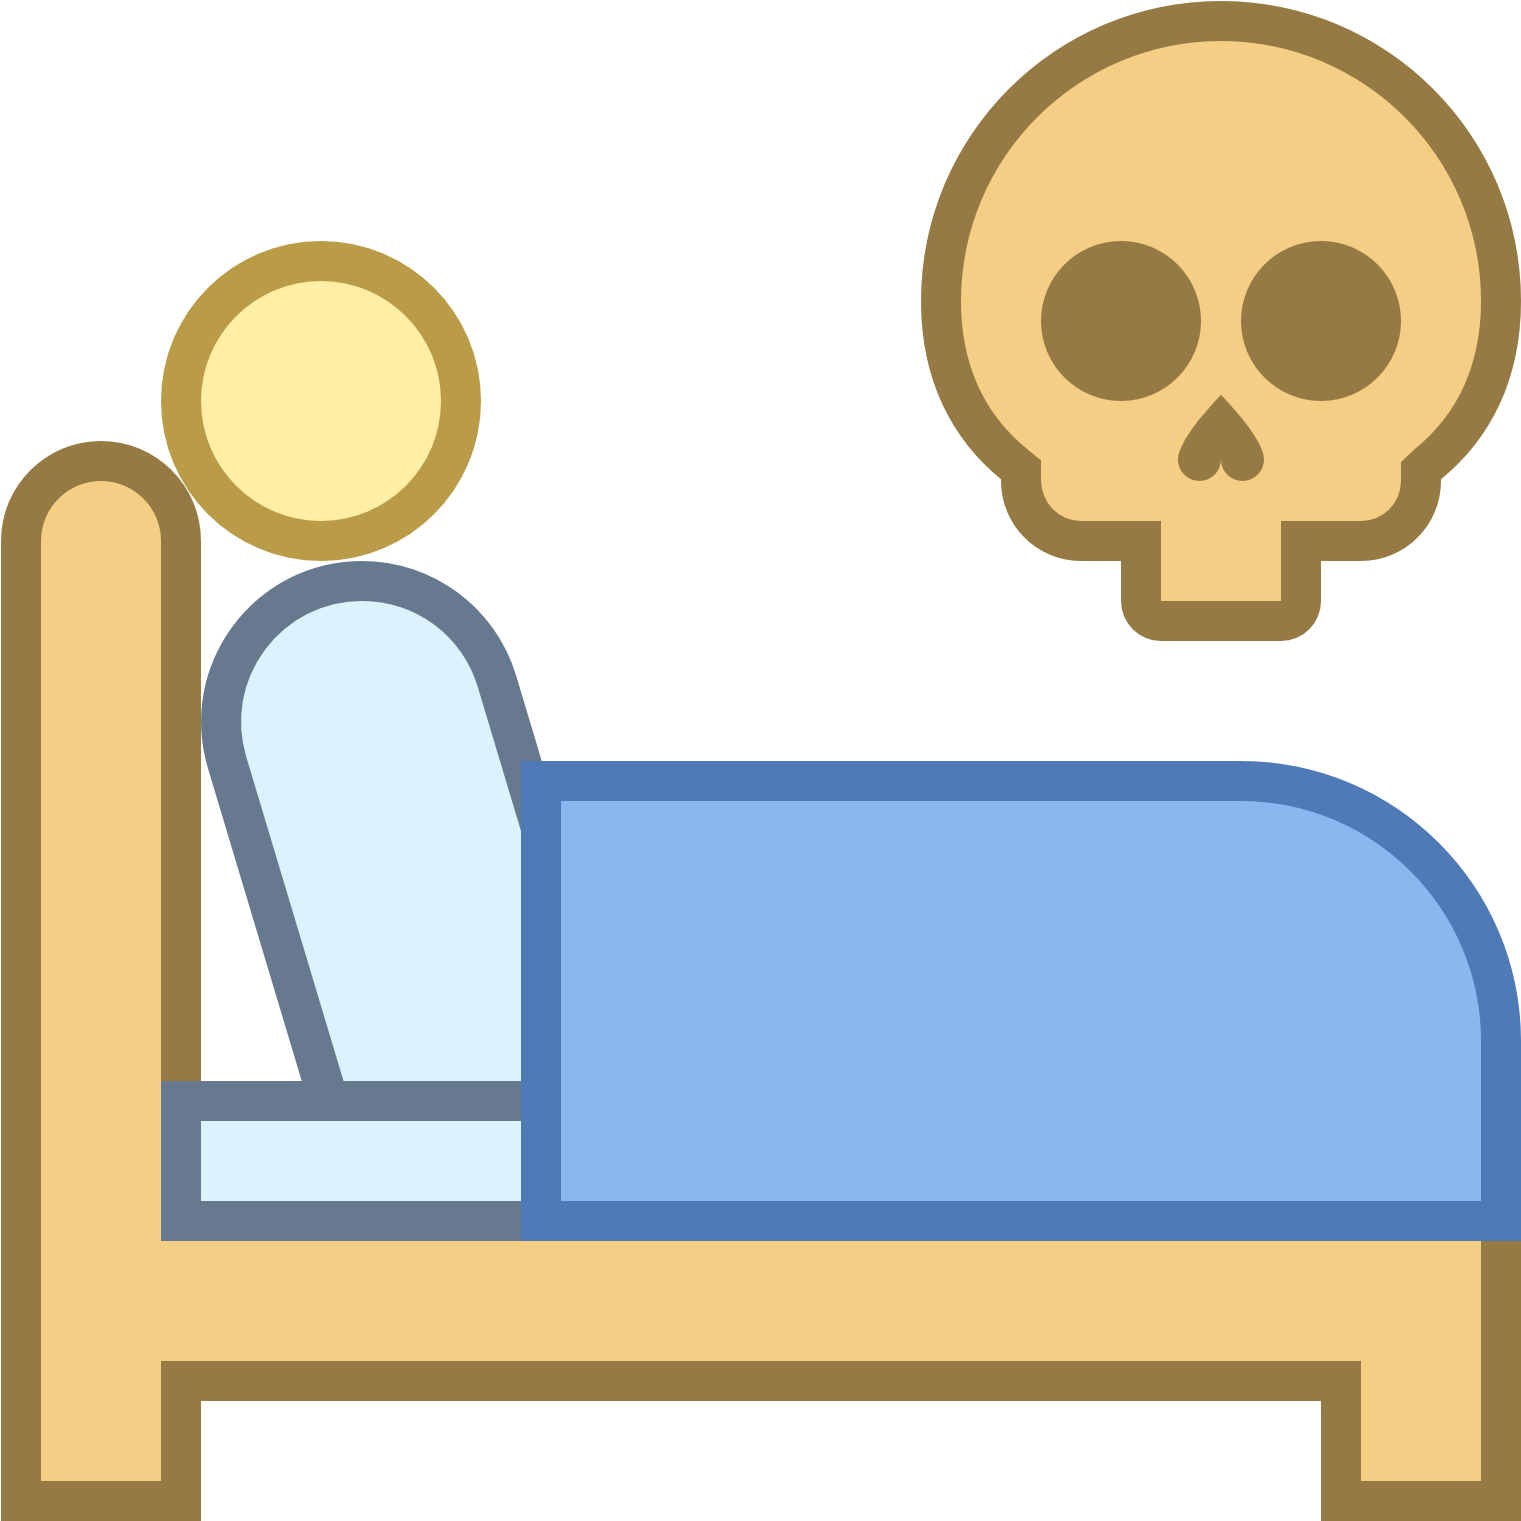 Transparent get ready for bed clipart - Die In Bed Icon Free - Make The Bed Icon